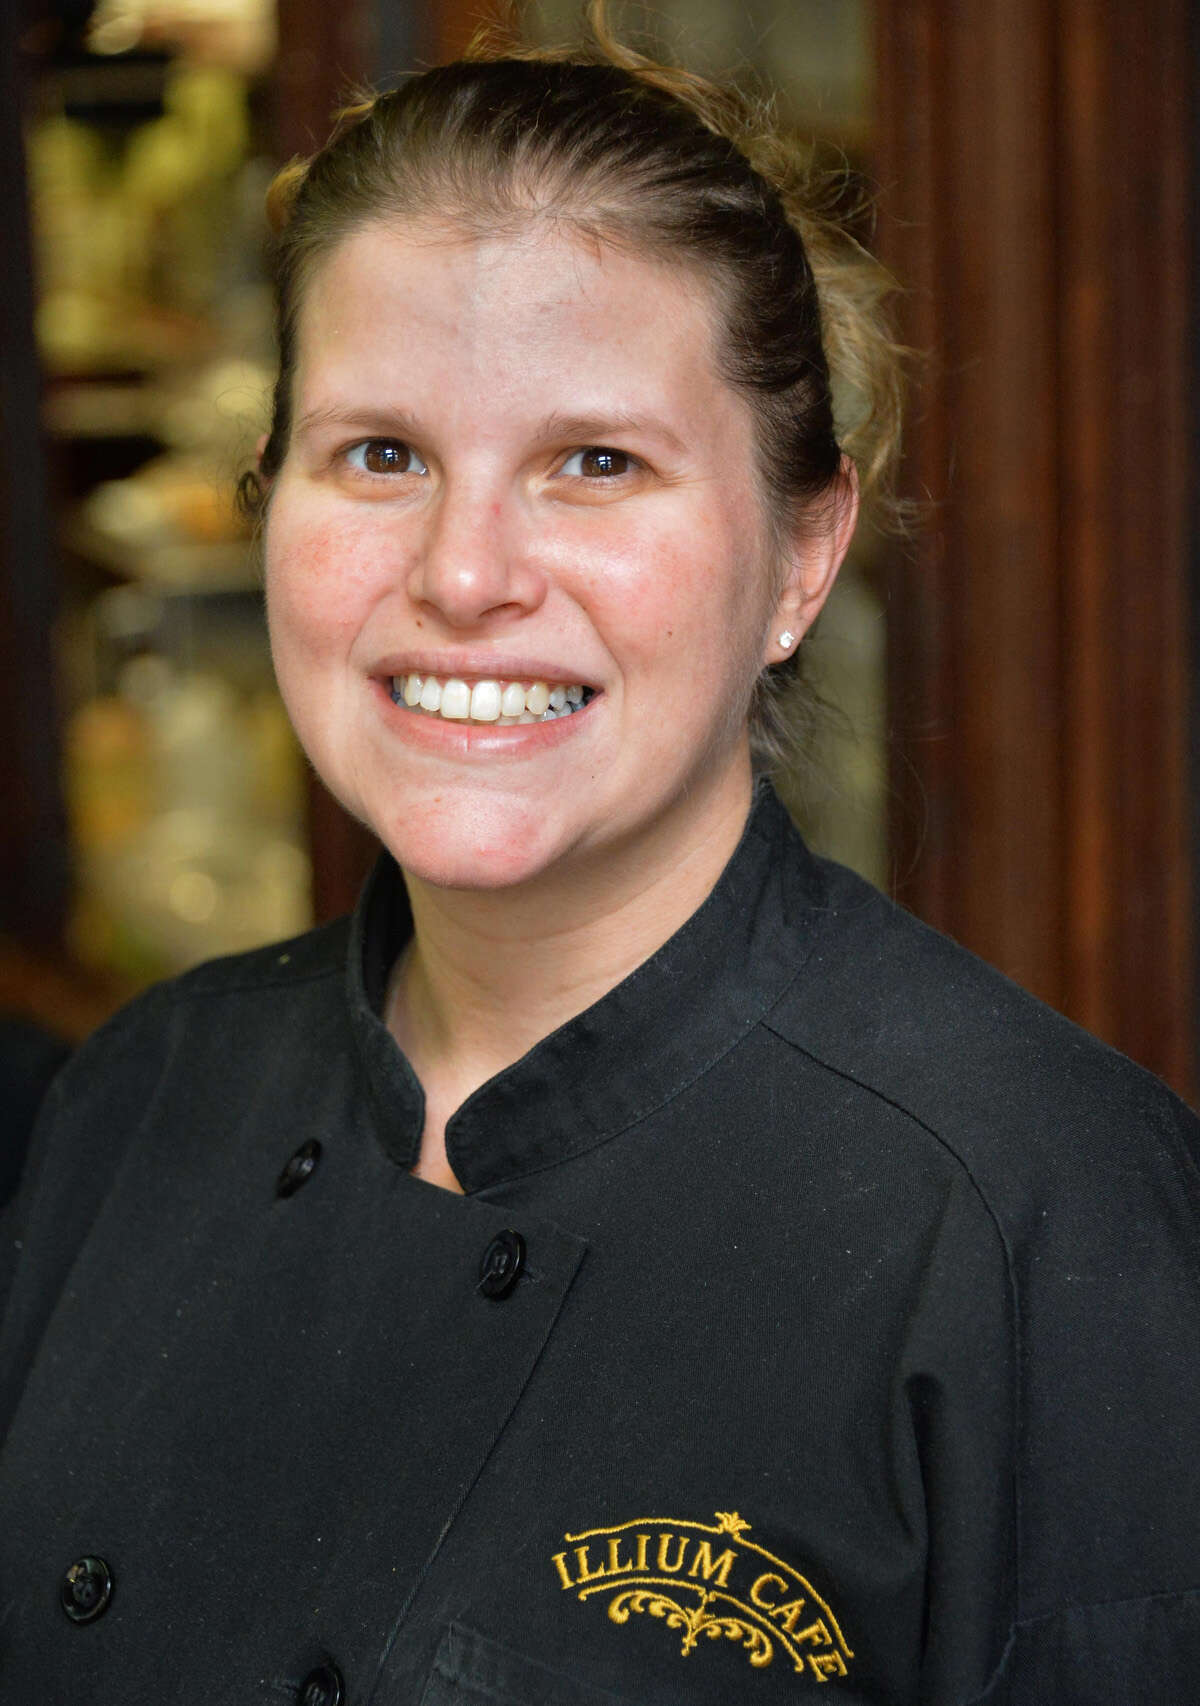 Chef-owner Marla Ortega said she was forced to close Westfall Station Bistro in Averill Park, effective immediately, because the strain of running two restaurants during and after the pandemic was too great. Her other restaurant, Illium Bistro at Pine Haven Country Club in Guilderland, remains open.